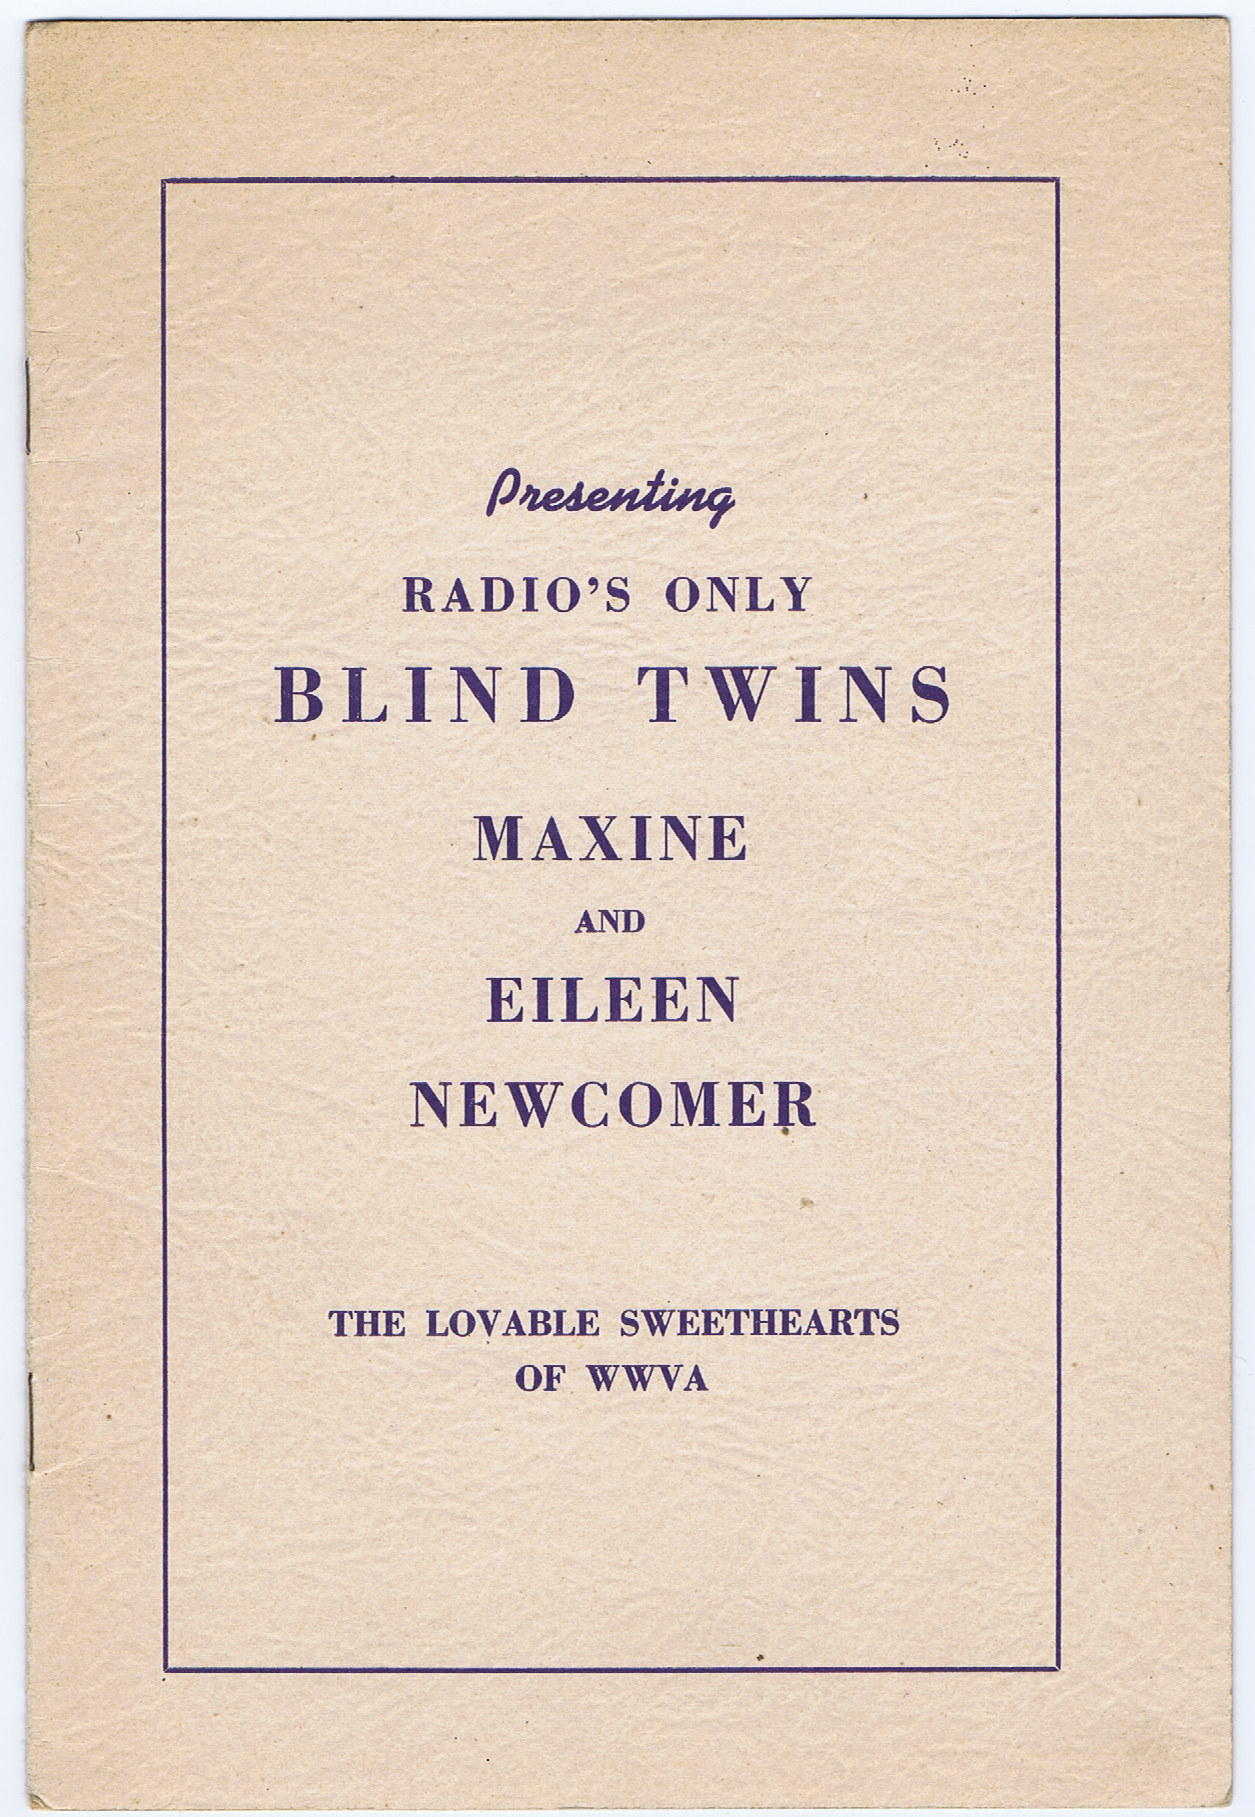 J510PRESENTING RADIO'S ONLY BLIND TWINS - MAXINE AND EILEEN NEWCOMER - THE LOVEABLE SWEETHEARTS OF WWVA